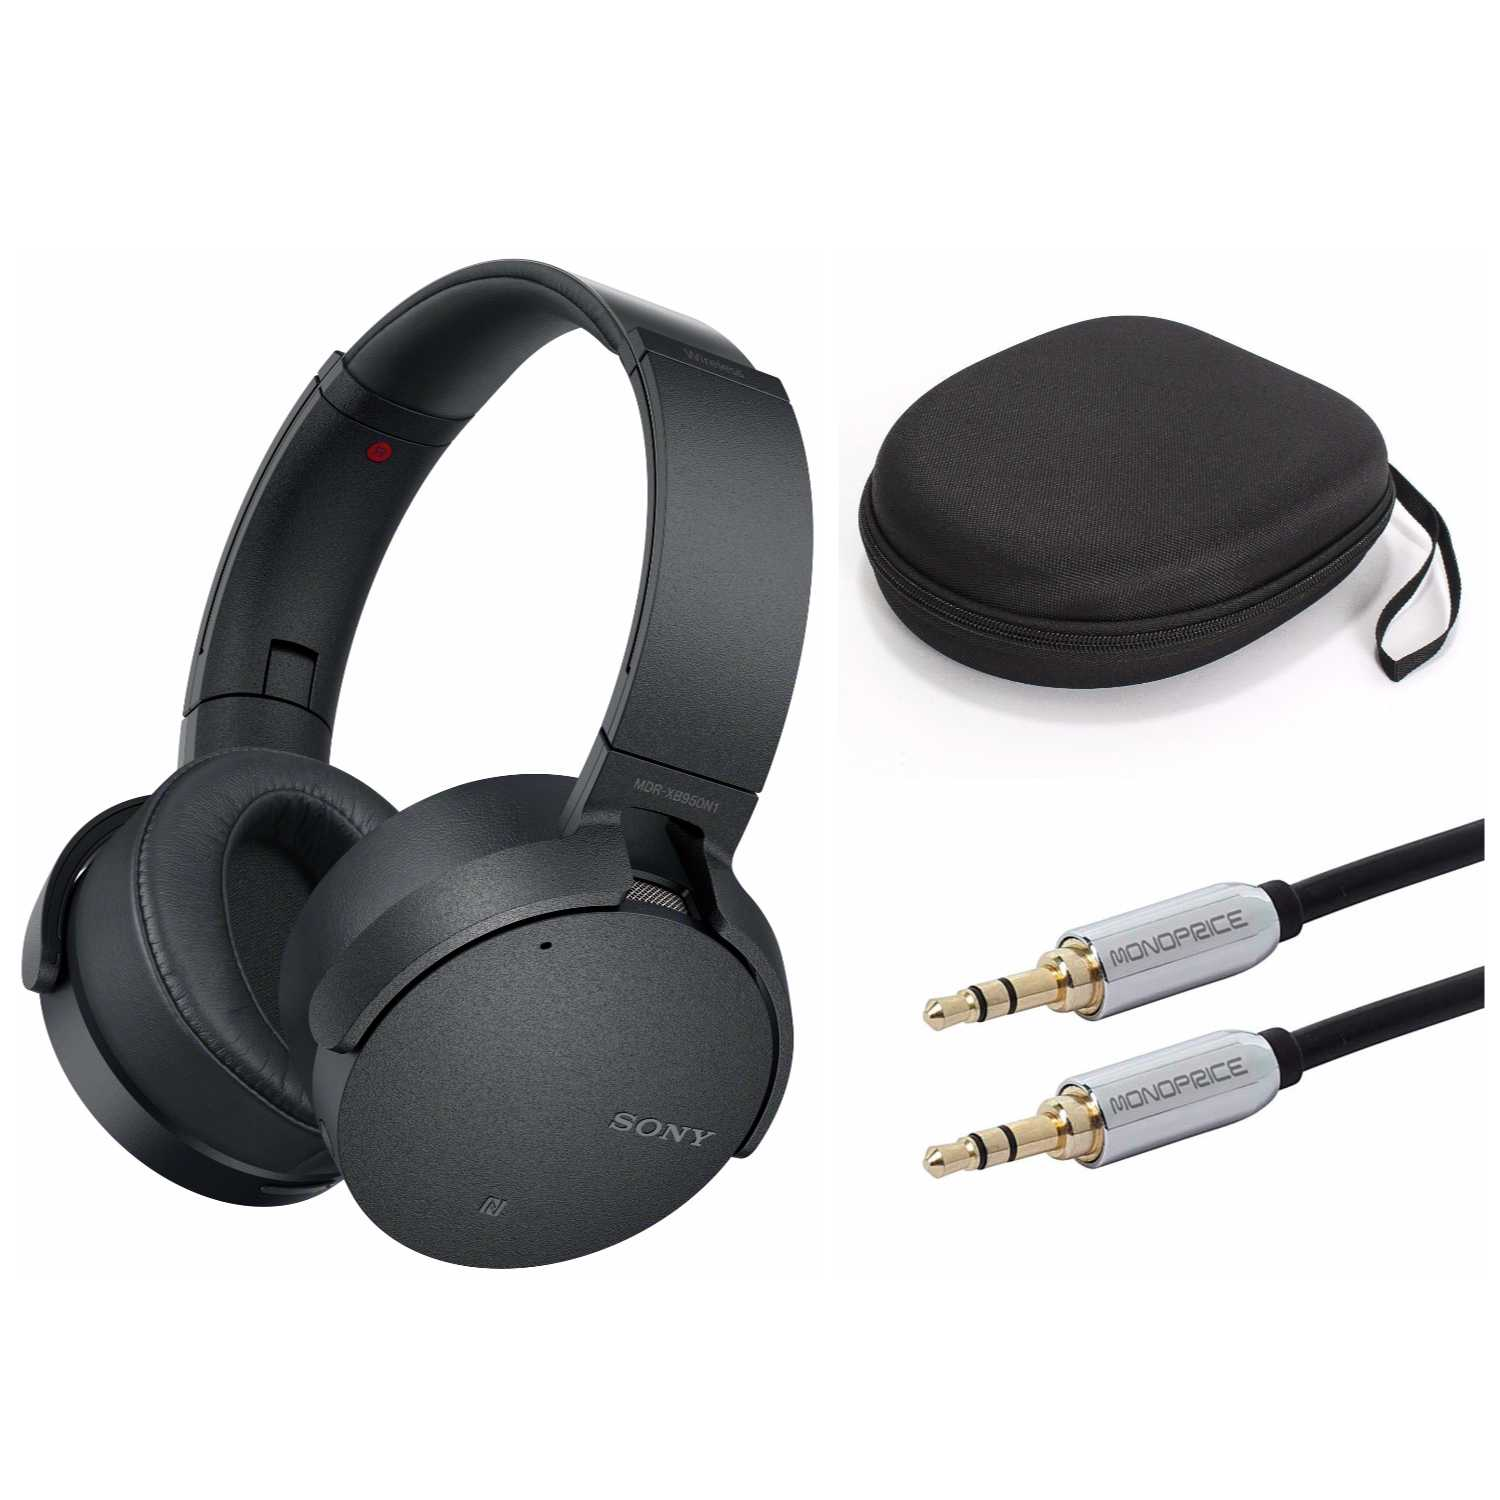 Sony XB950N1 Extra Bass Wireless Noise Canceling Headphones (Black) Bundle